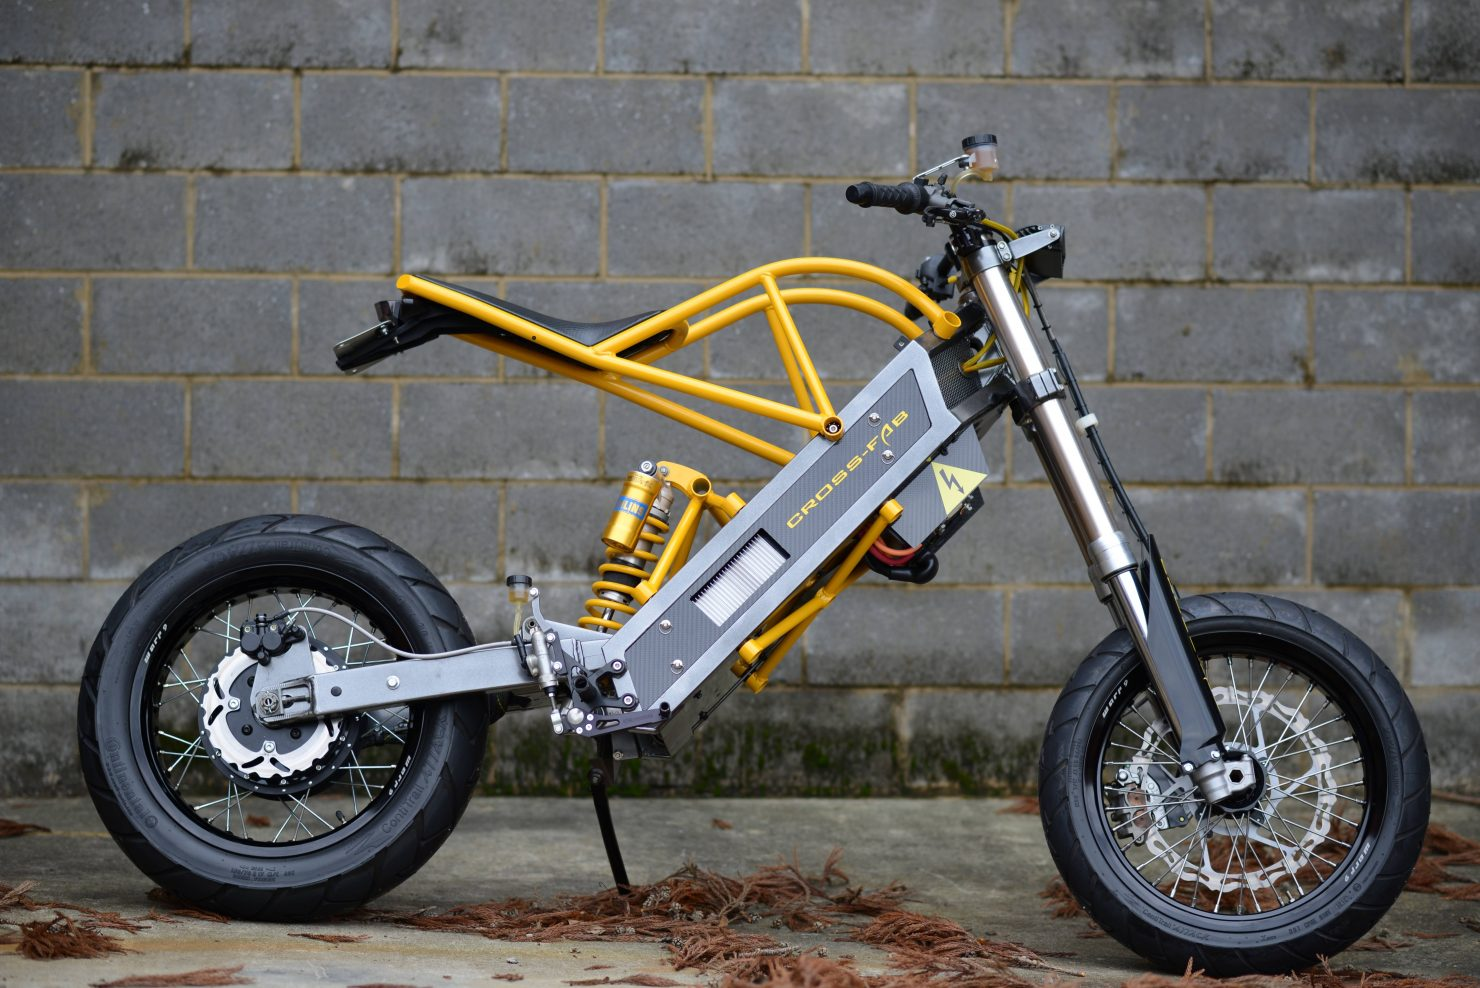 ExoDyne Electric Motorcycle 2 1480x988 - ExoDyne Electric Motorcycle